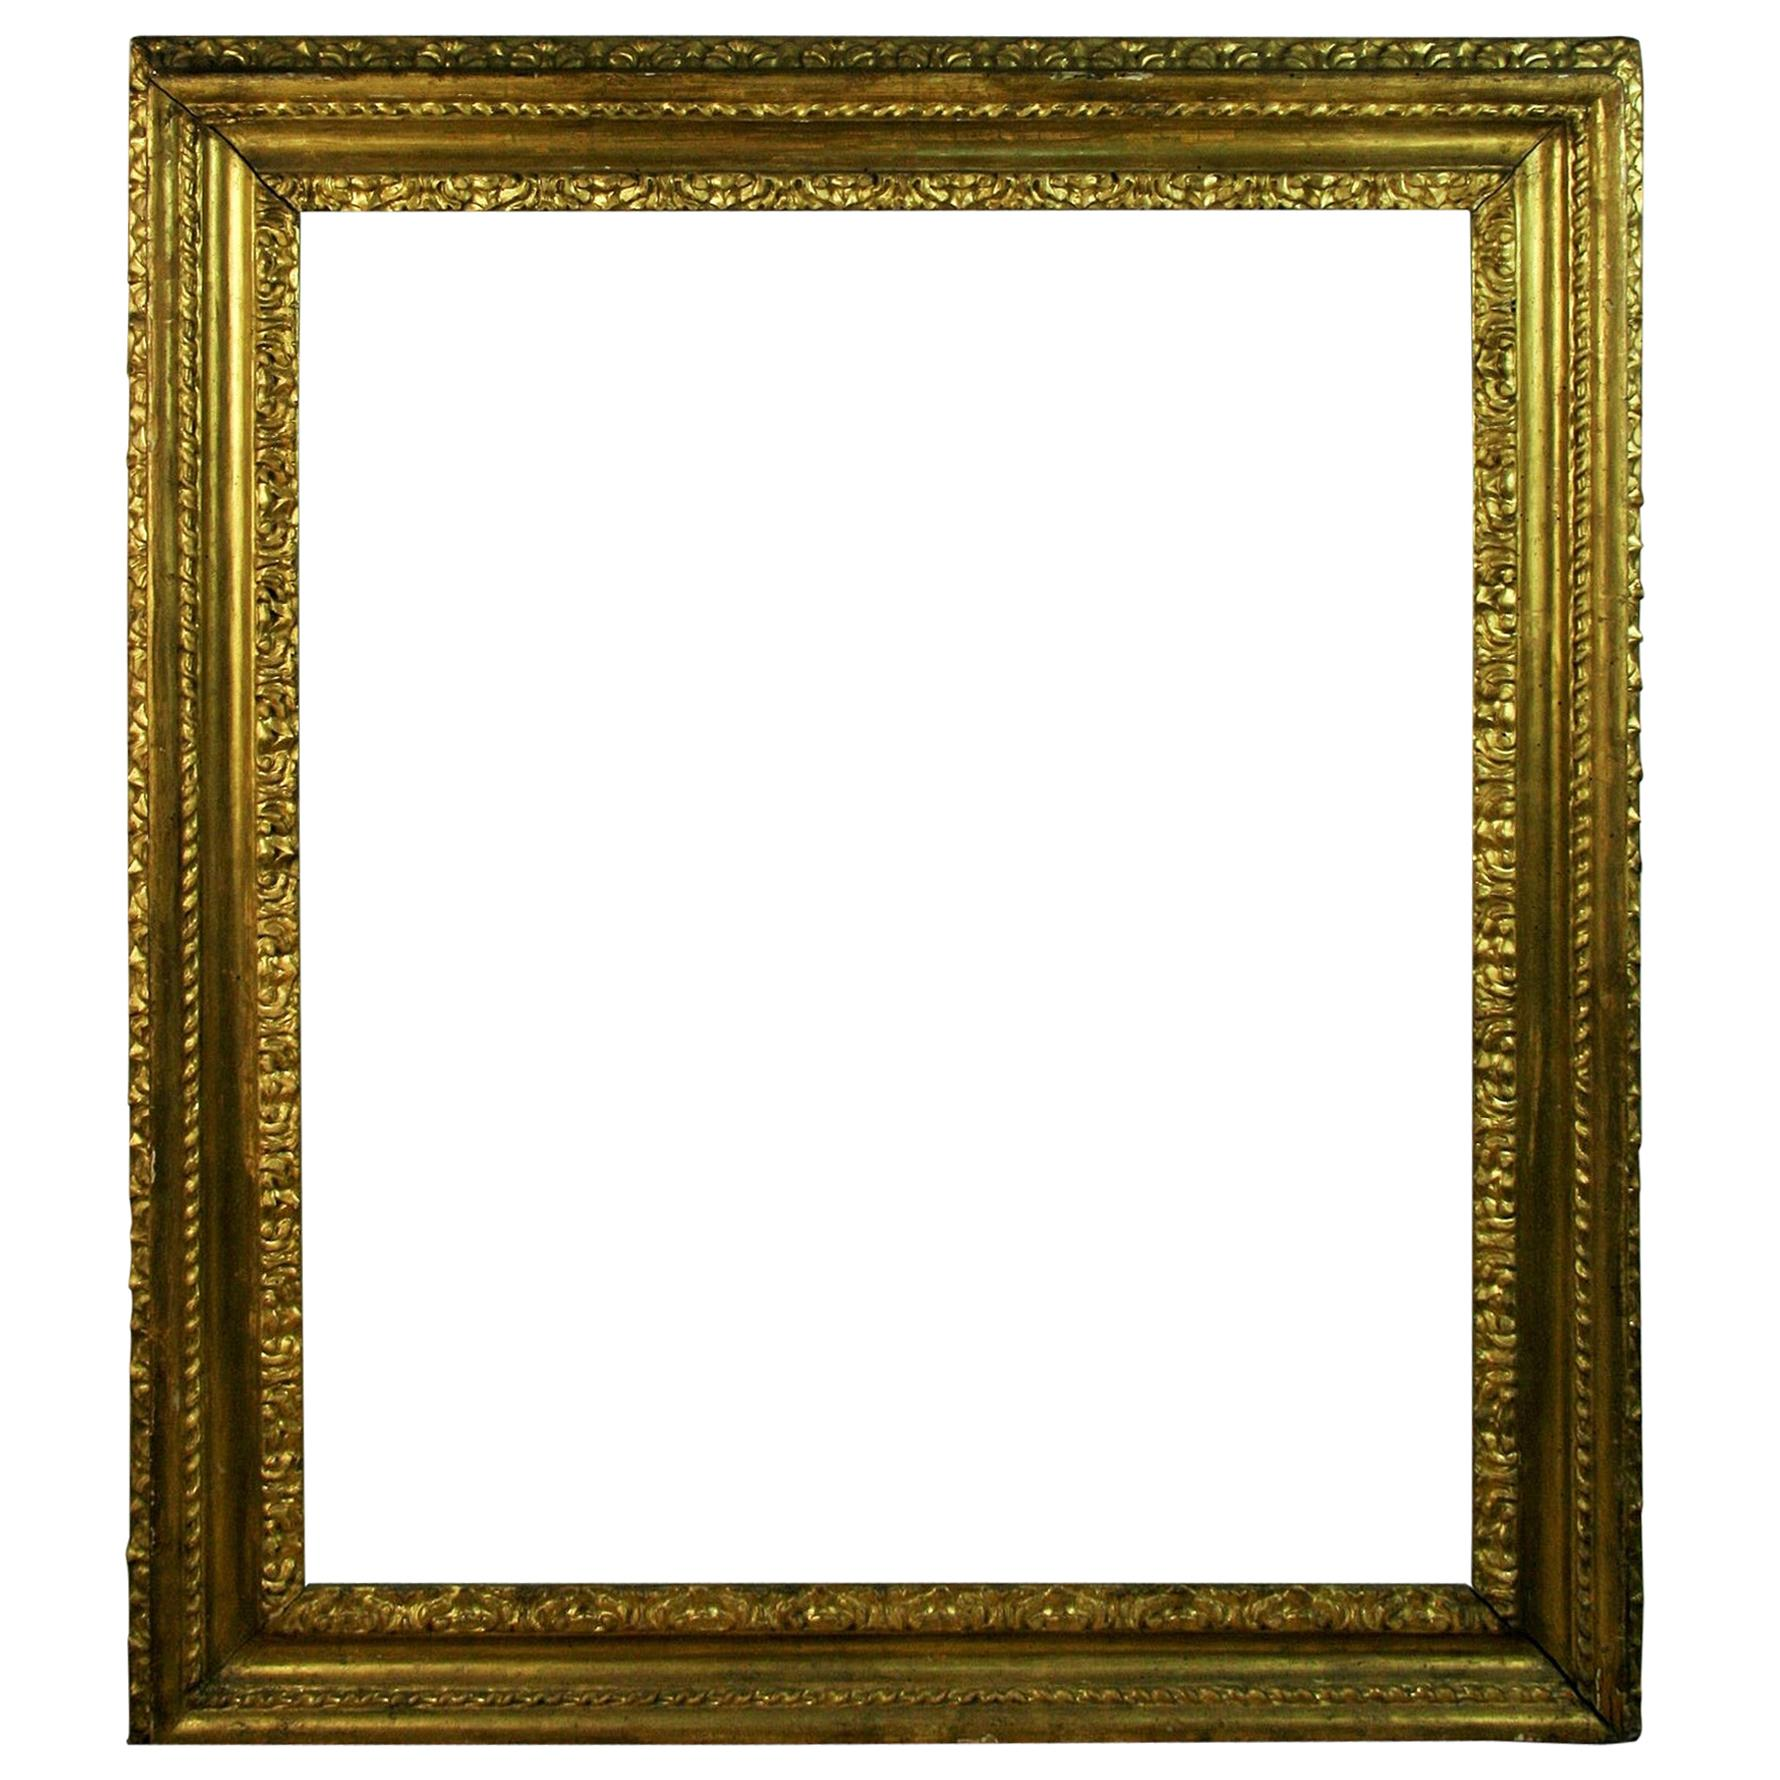 over Sized 19th Century Italian Water Giltwood Frame